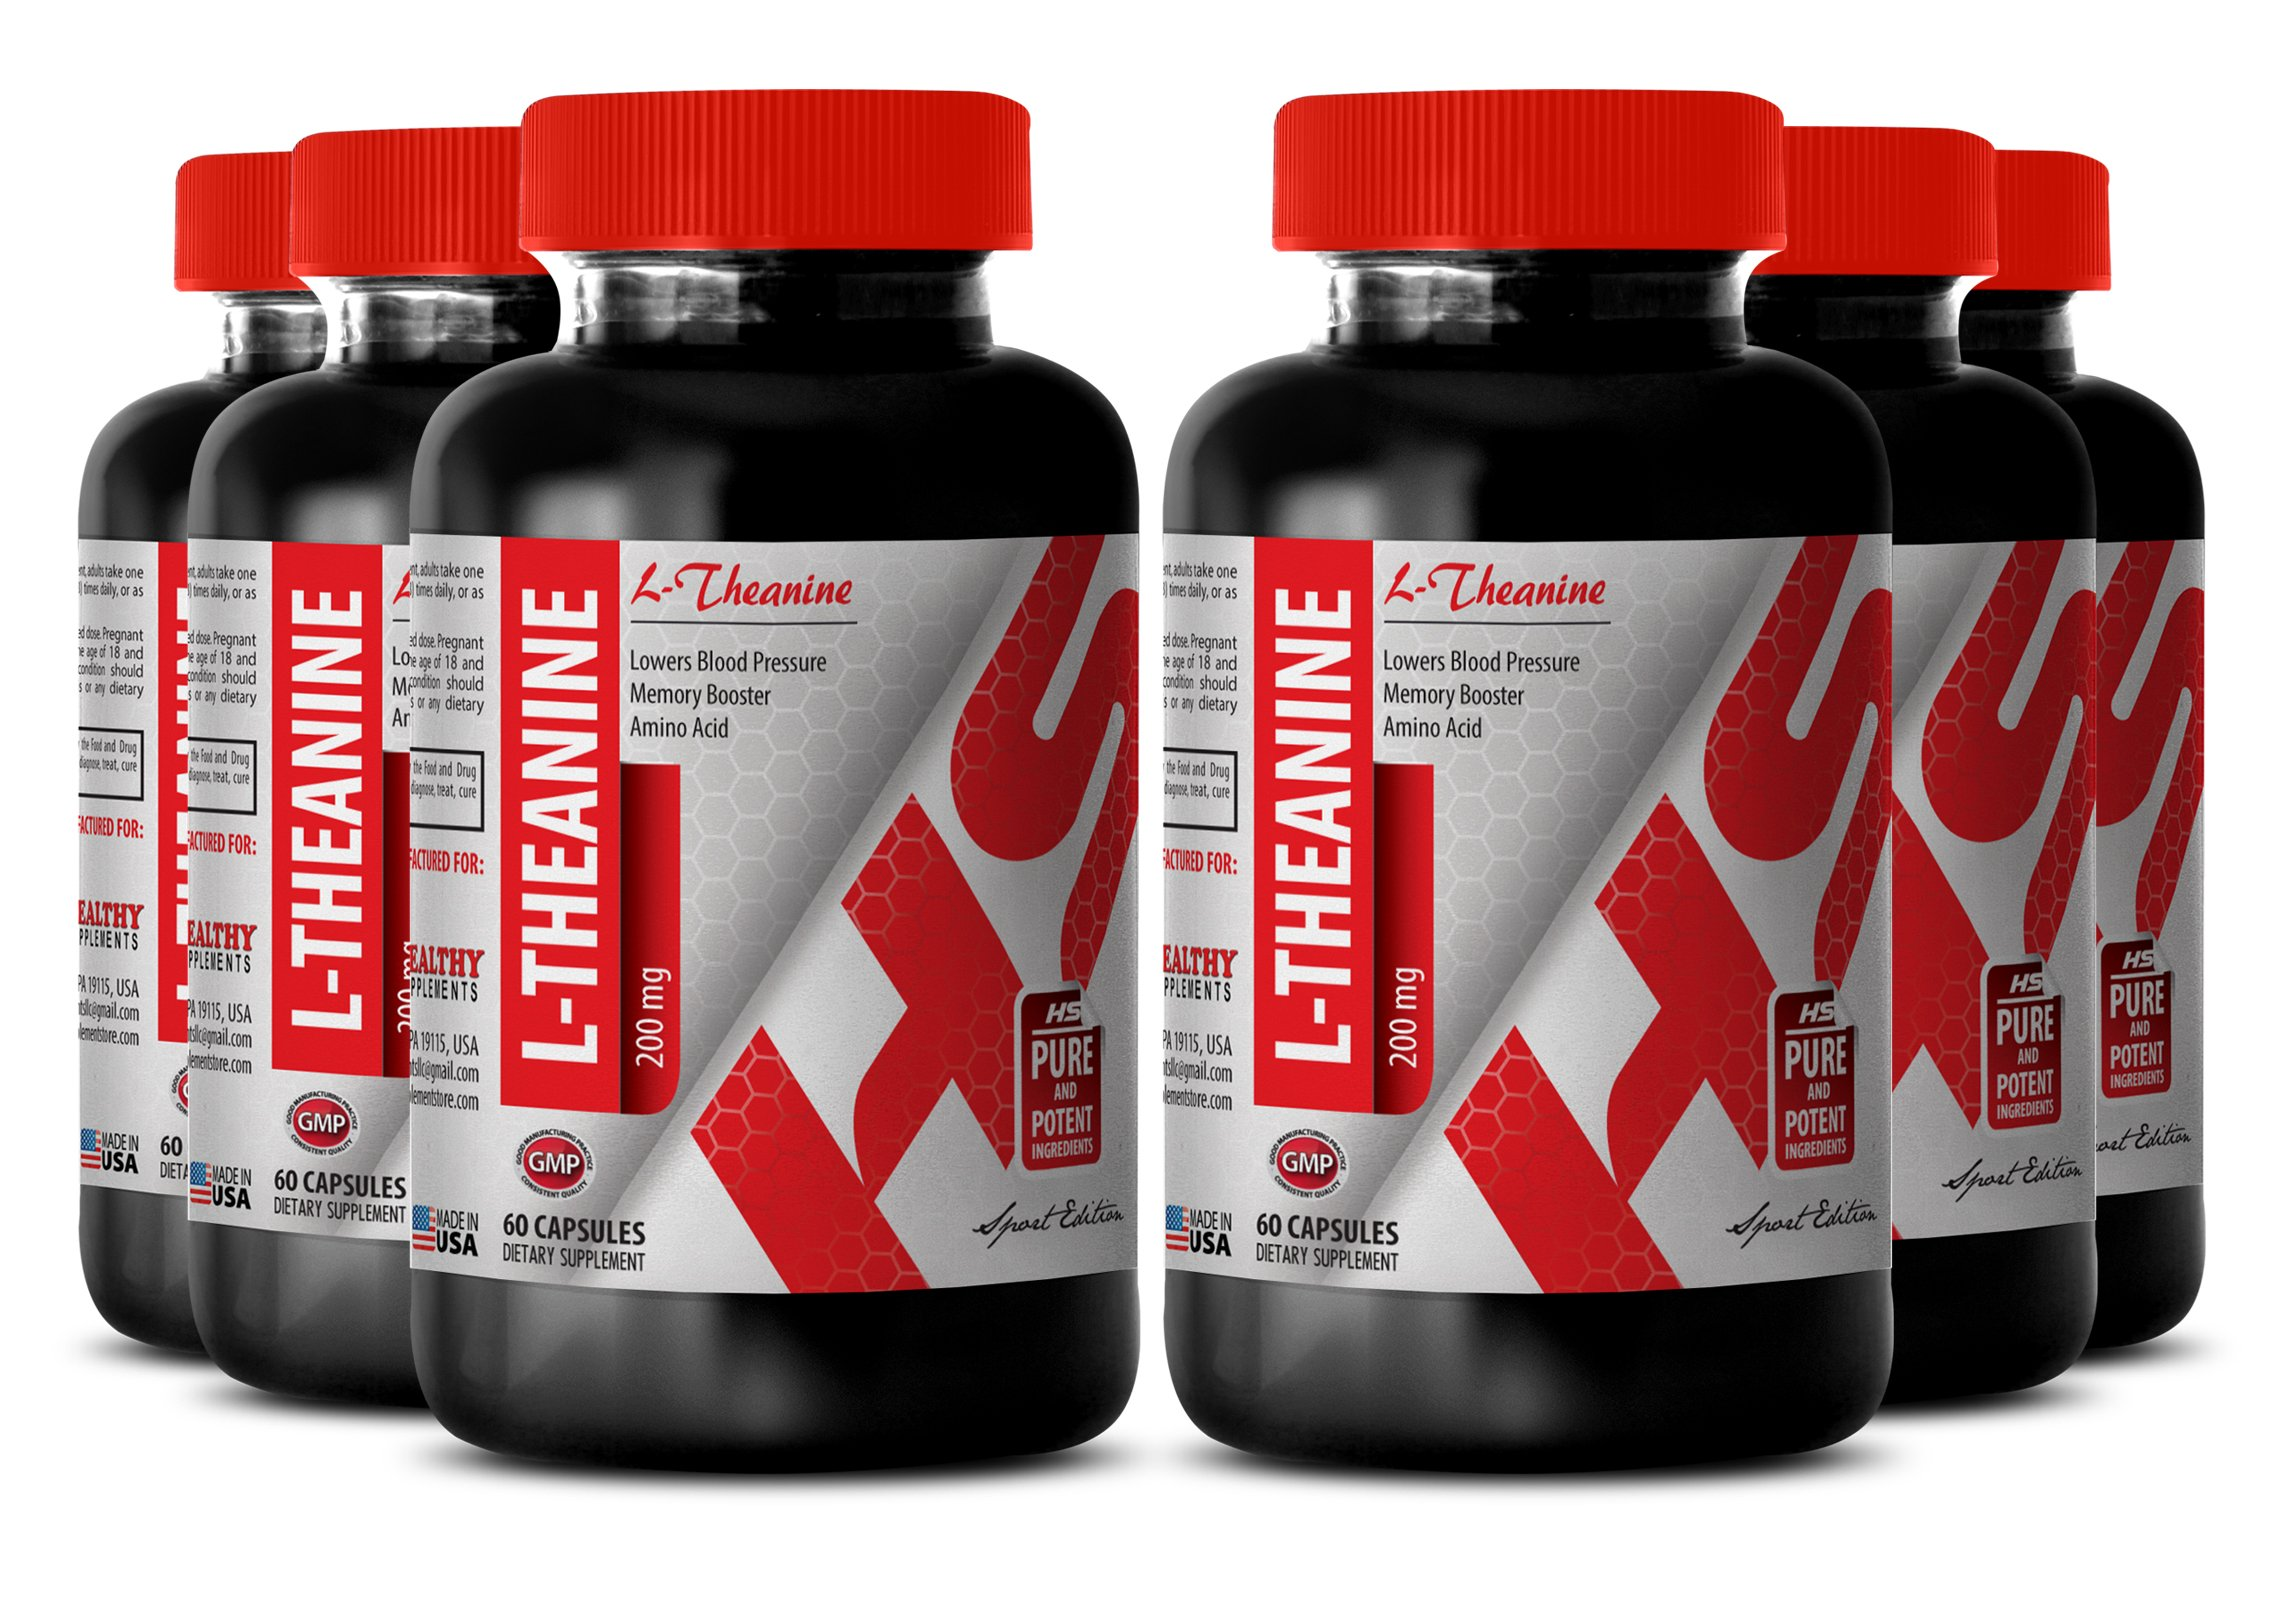 L-theanine 200mg organic - NATURAL L-THEANINE 200MG - support blood pressure (6 Bottles)